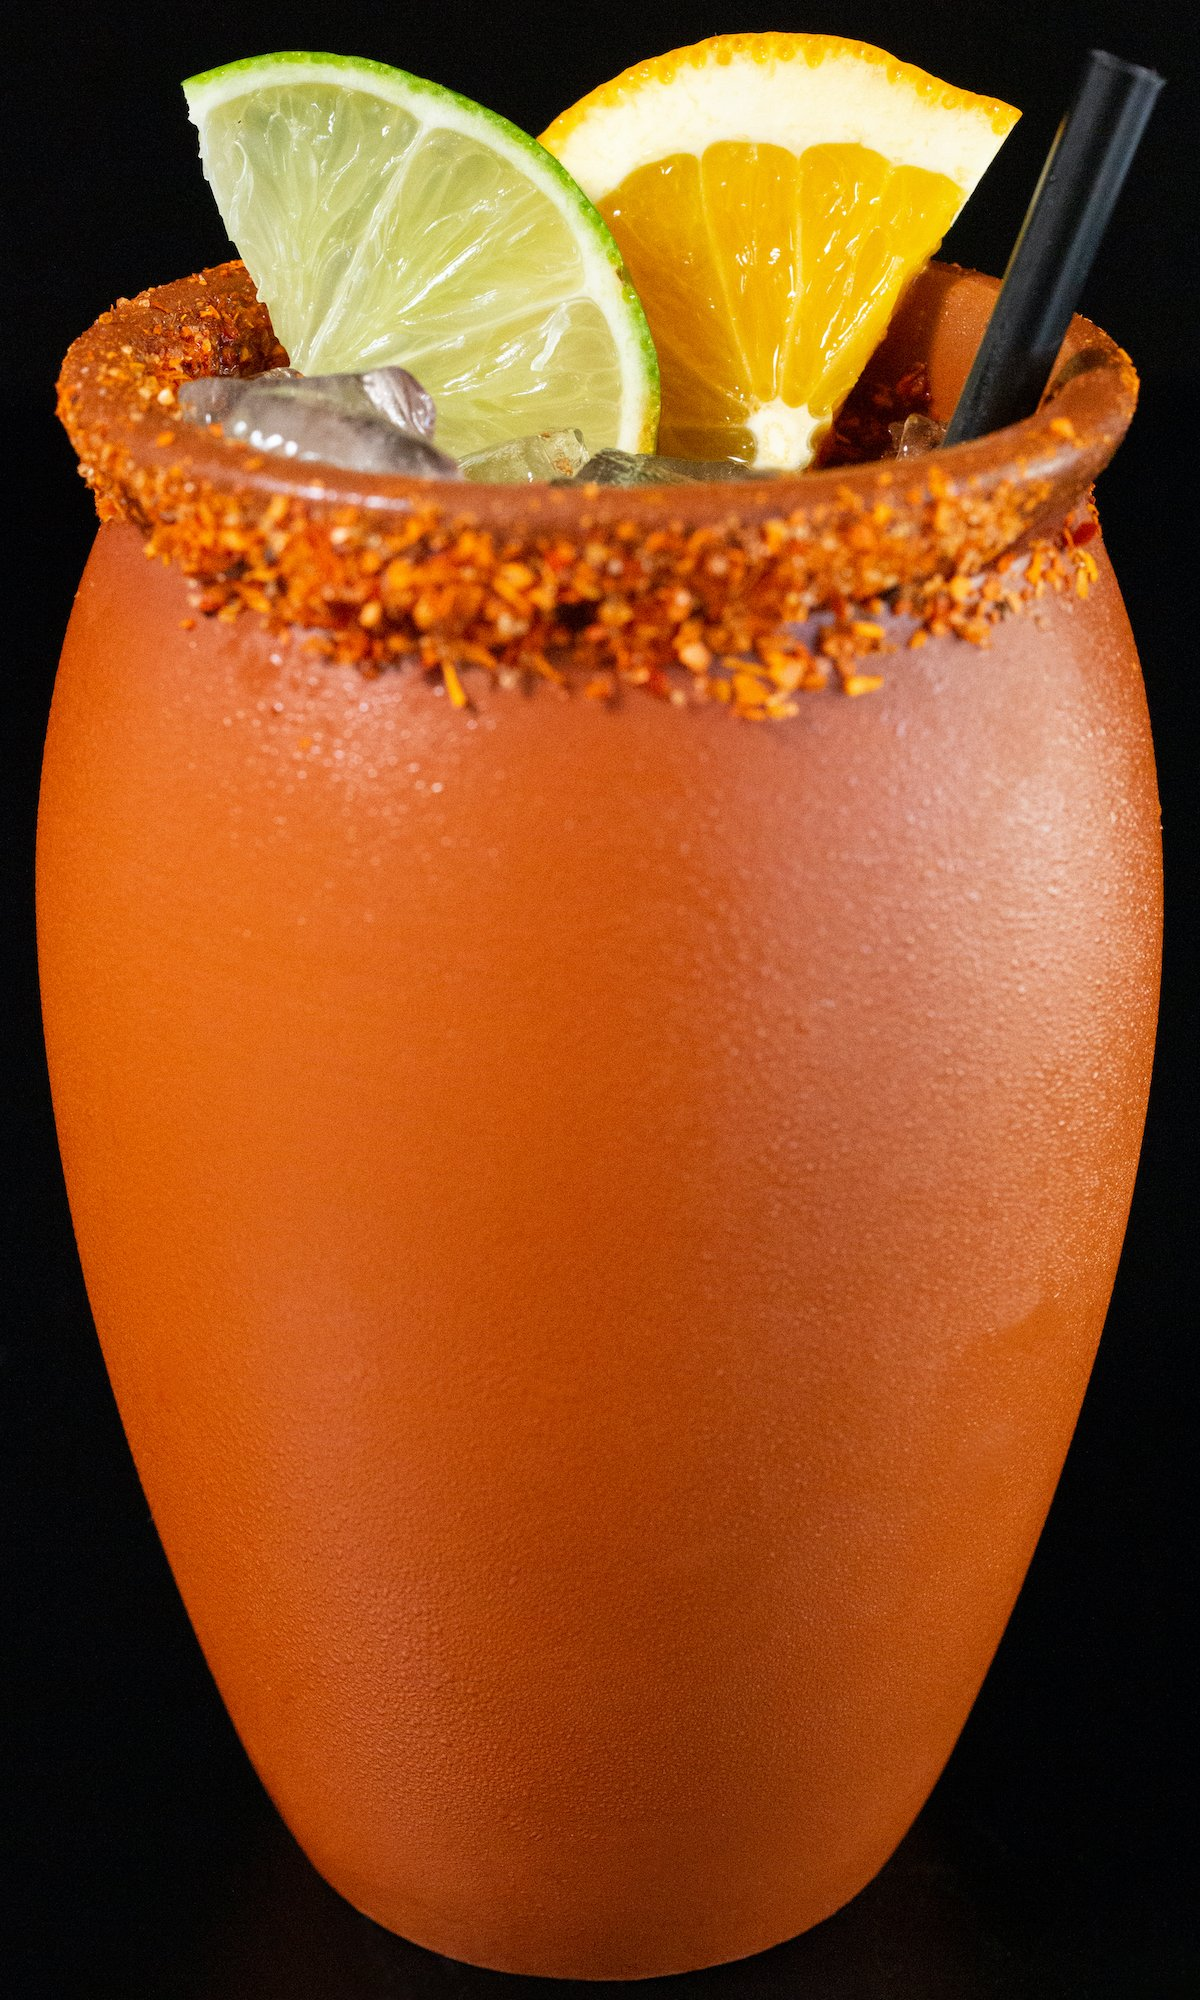 A clay pot filled with a cantarito cocktail sits on a black background. The rim of the pot is covered in chile salt and it is garnished with a lime and orange slice.